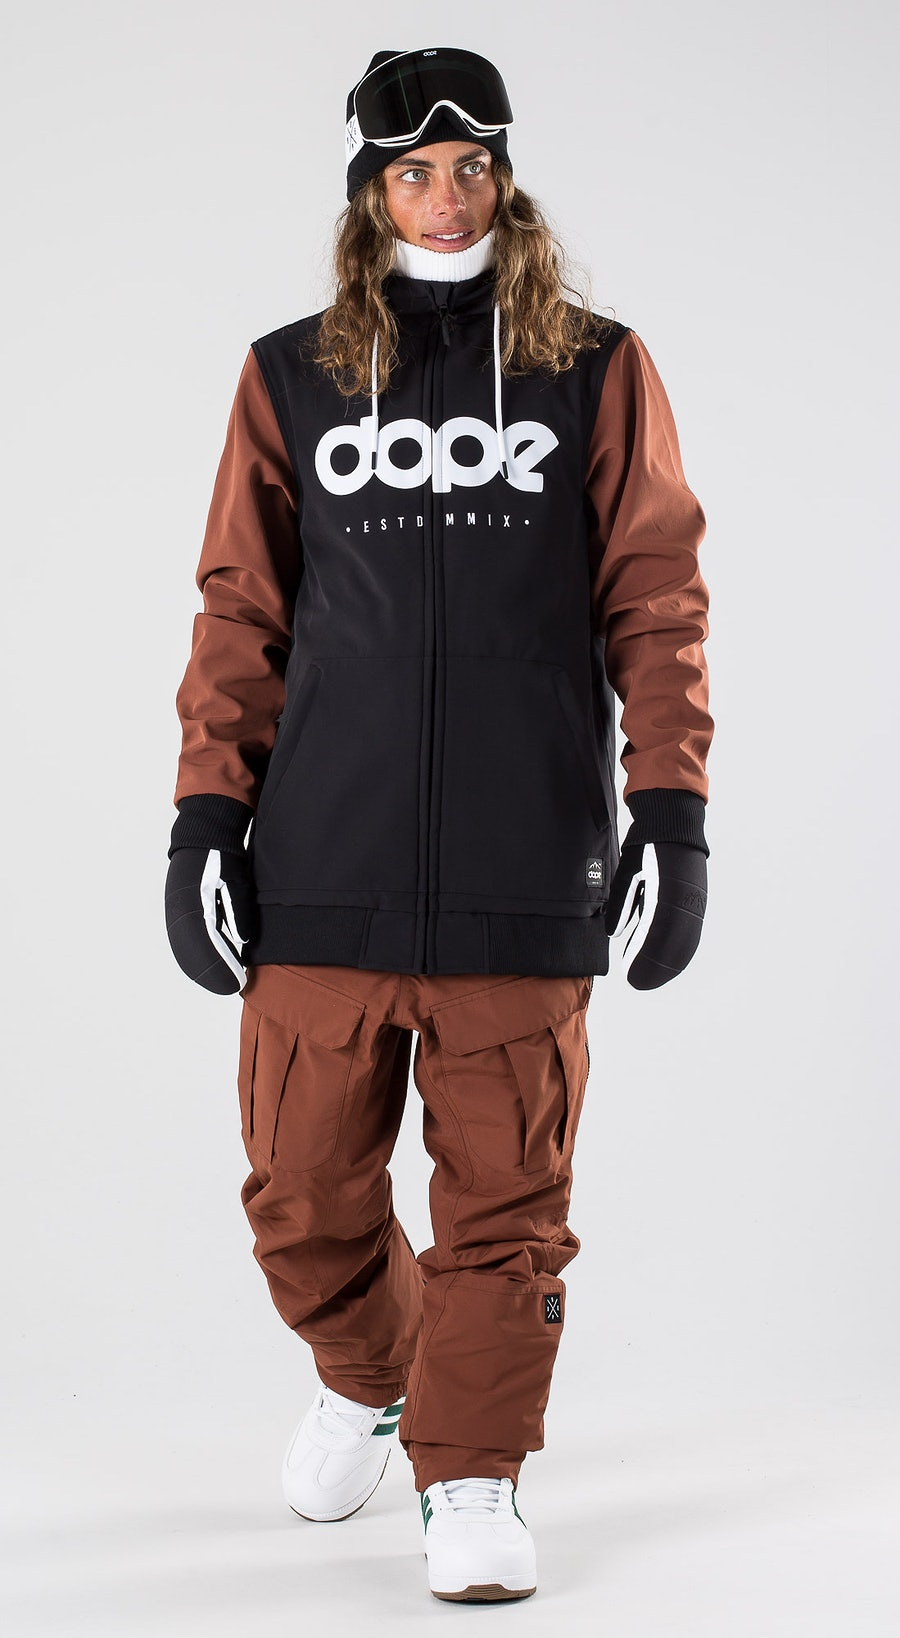 Dope Standard DO Black/Adobe Snowboardkleidung Multi